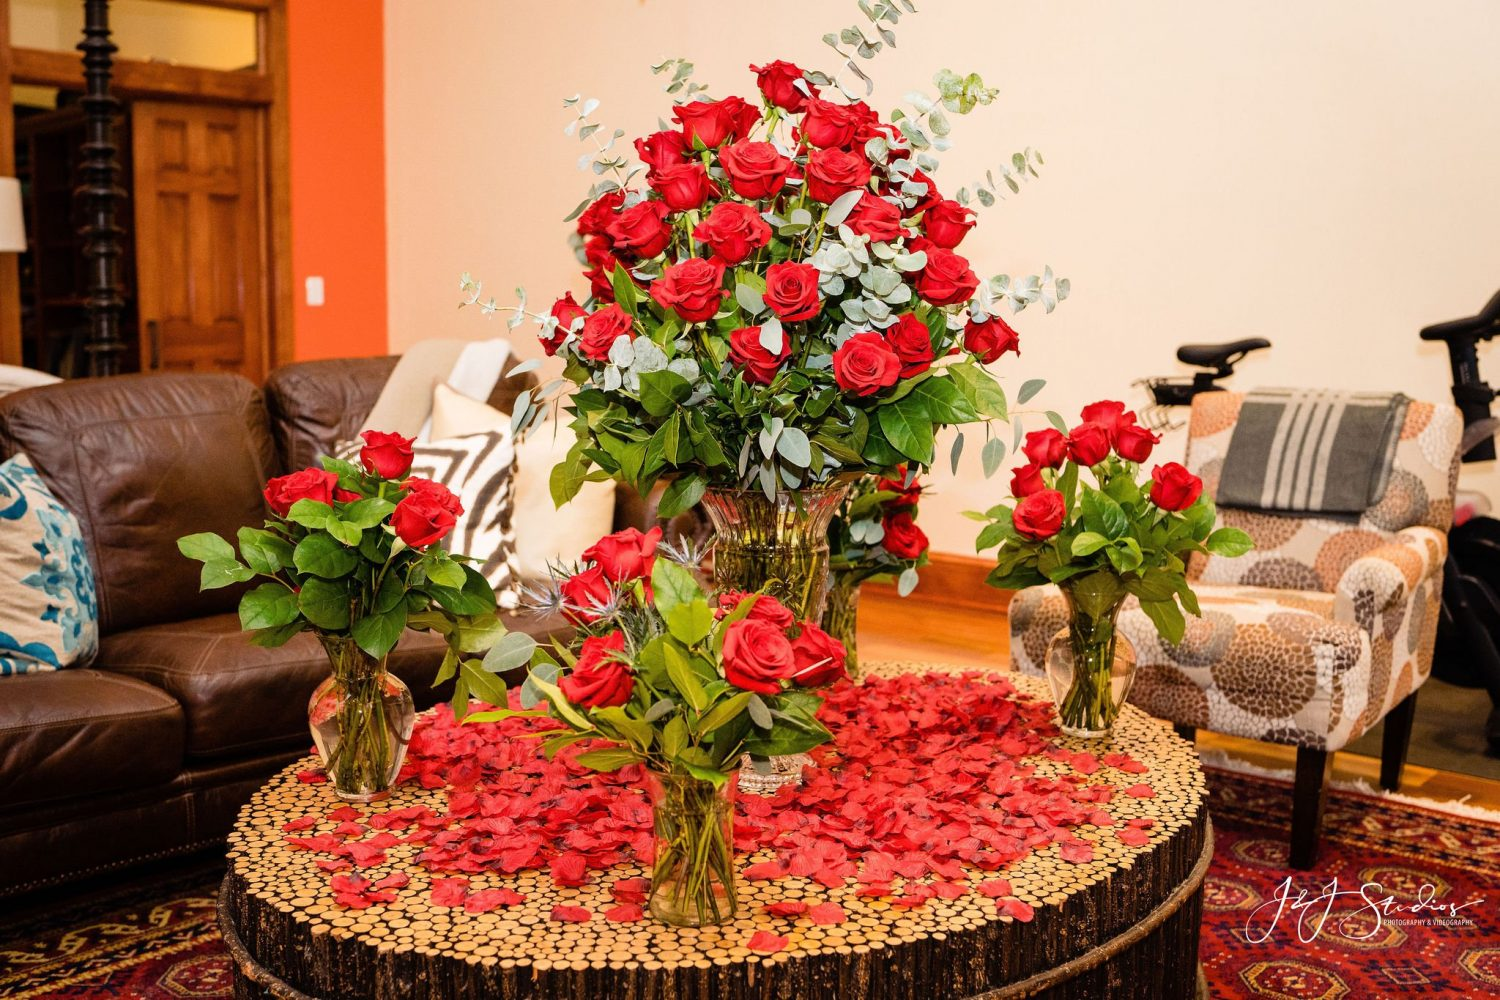 tons of roses and rose petals on table